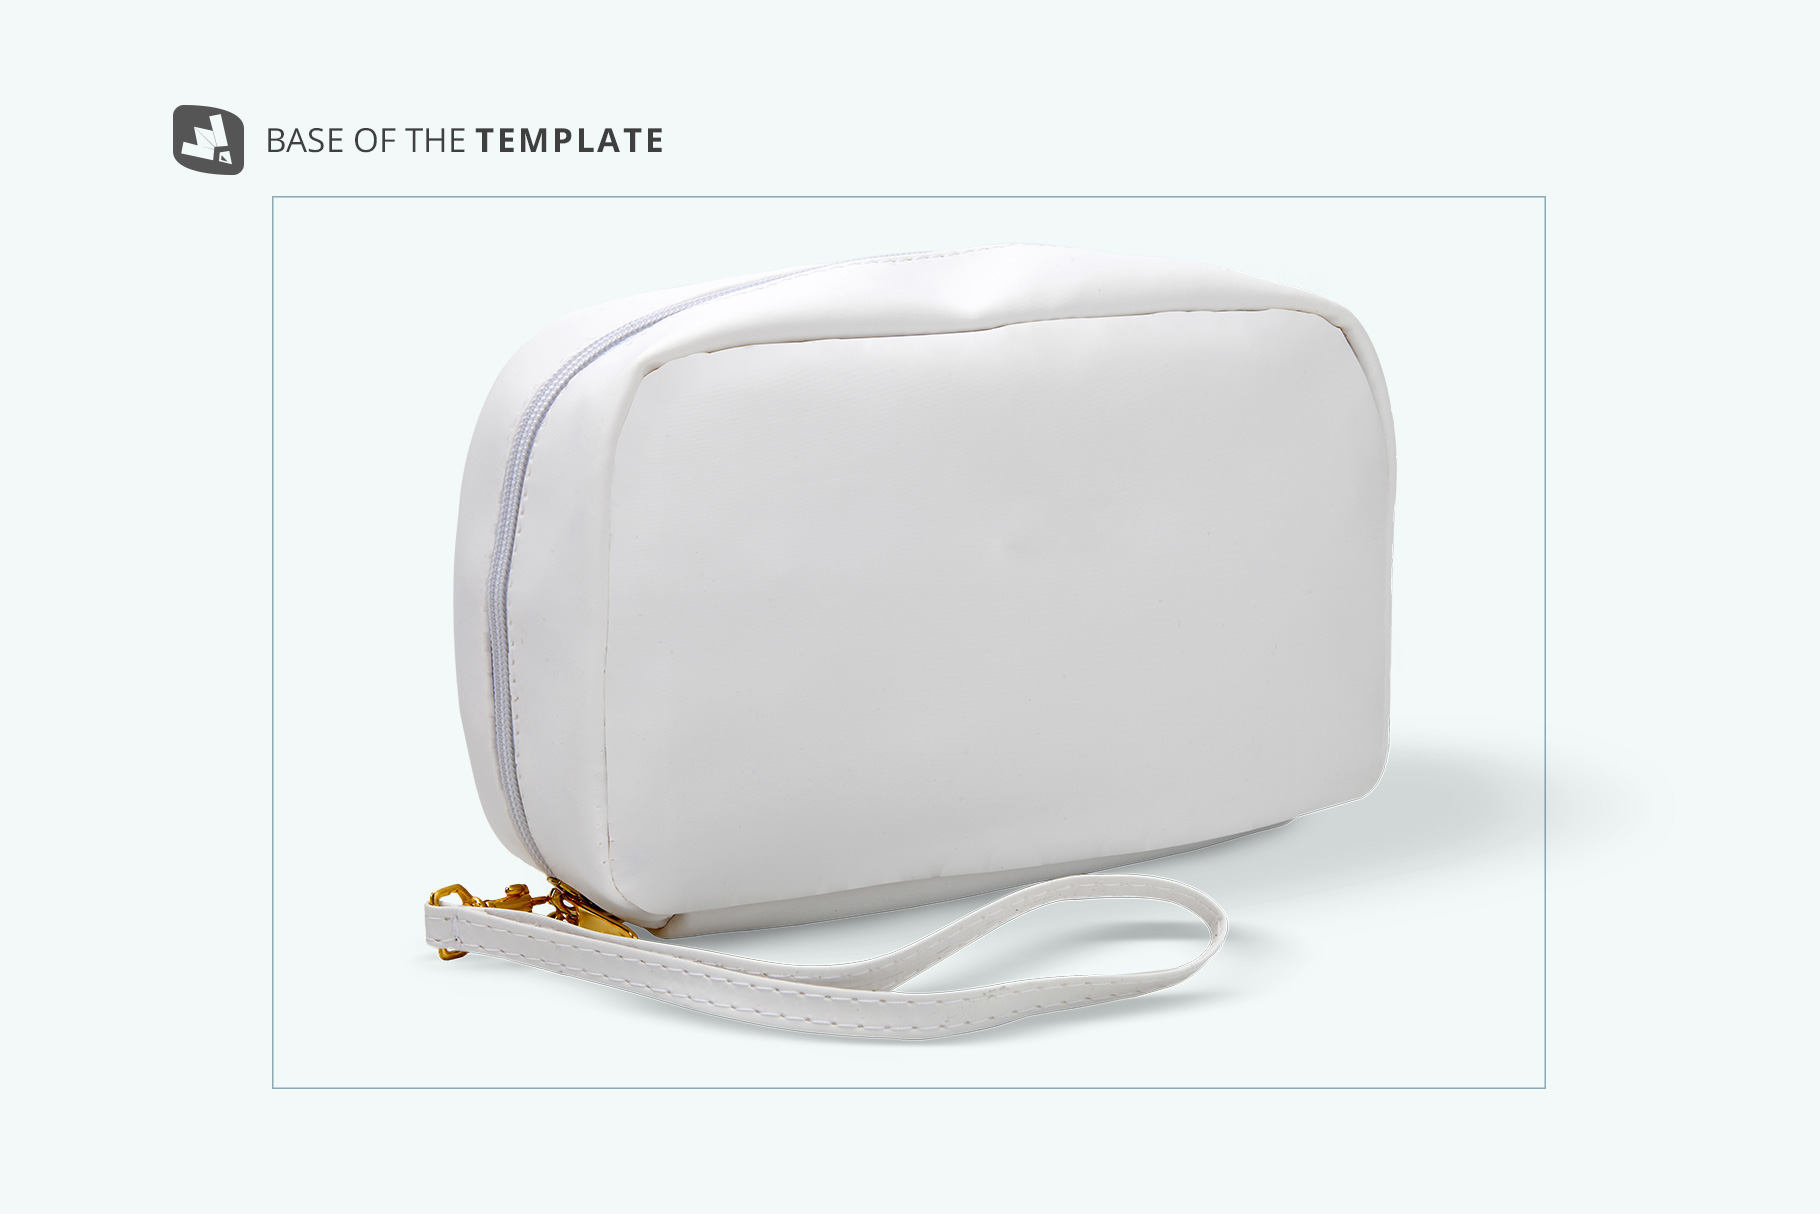 base image of the front view travel kit mockup